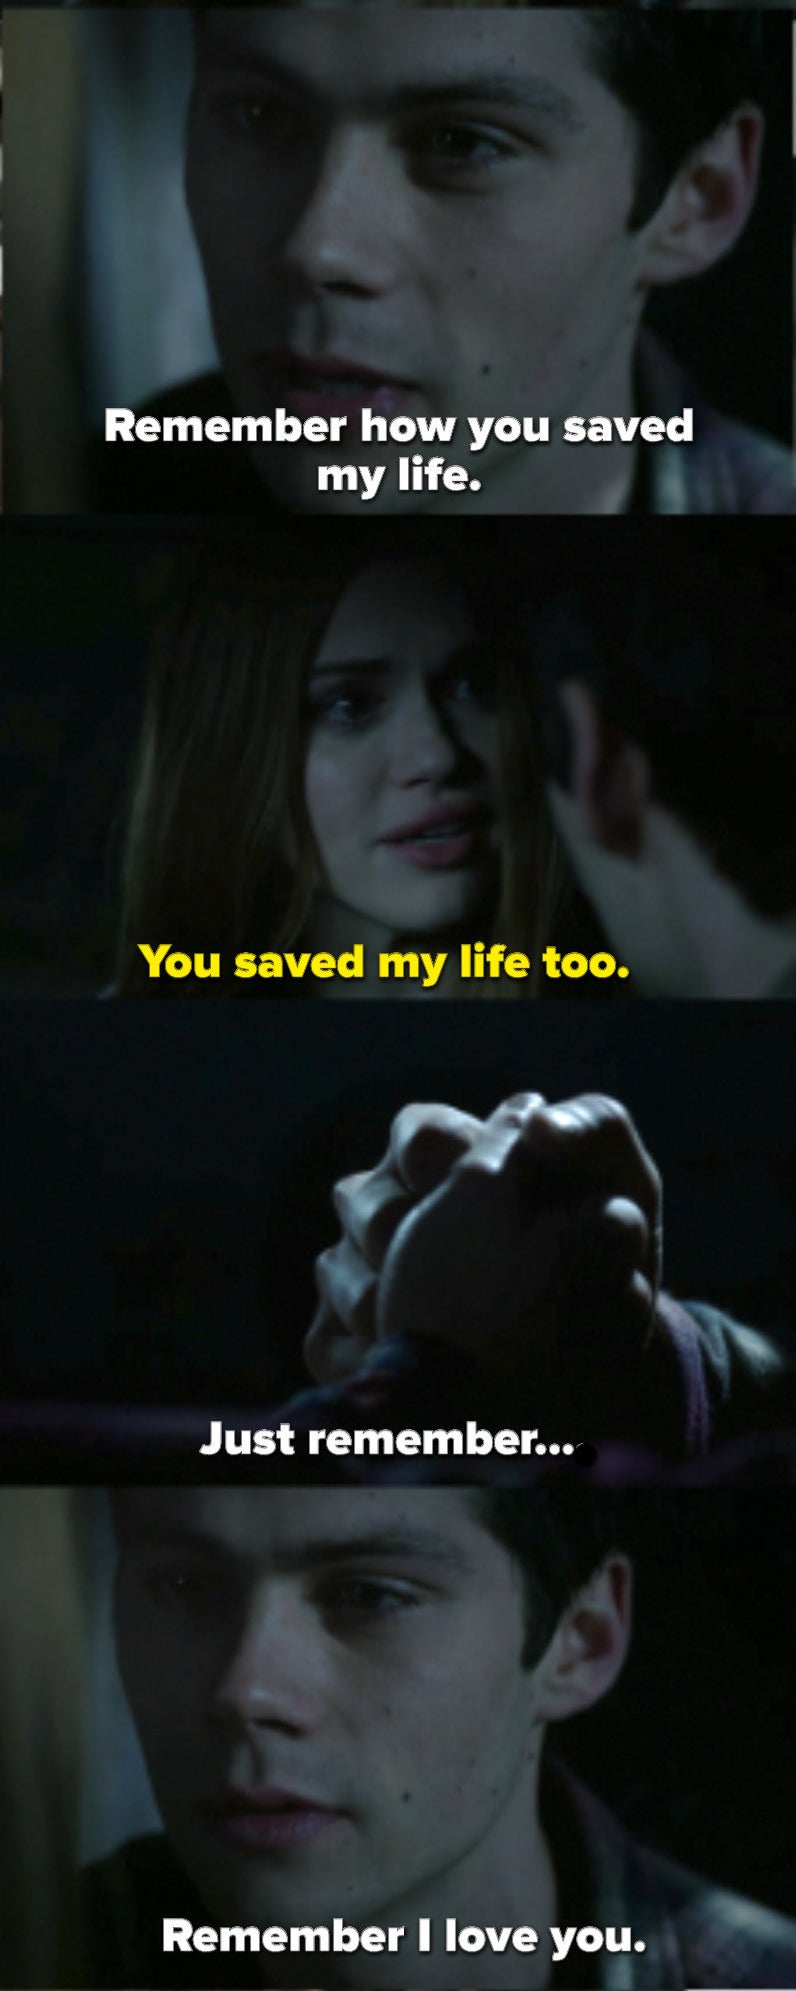 """Stiles asks Lydia to find some way to remember him. That they danced together, that he had a crush on her, that she saved his life. She says he saved hers too. Then Stiles says, """"Remember I love you"""""""